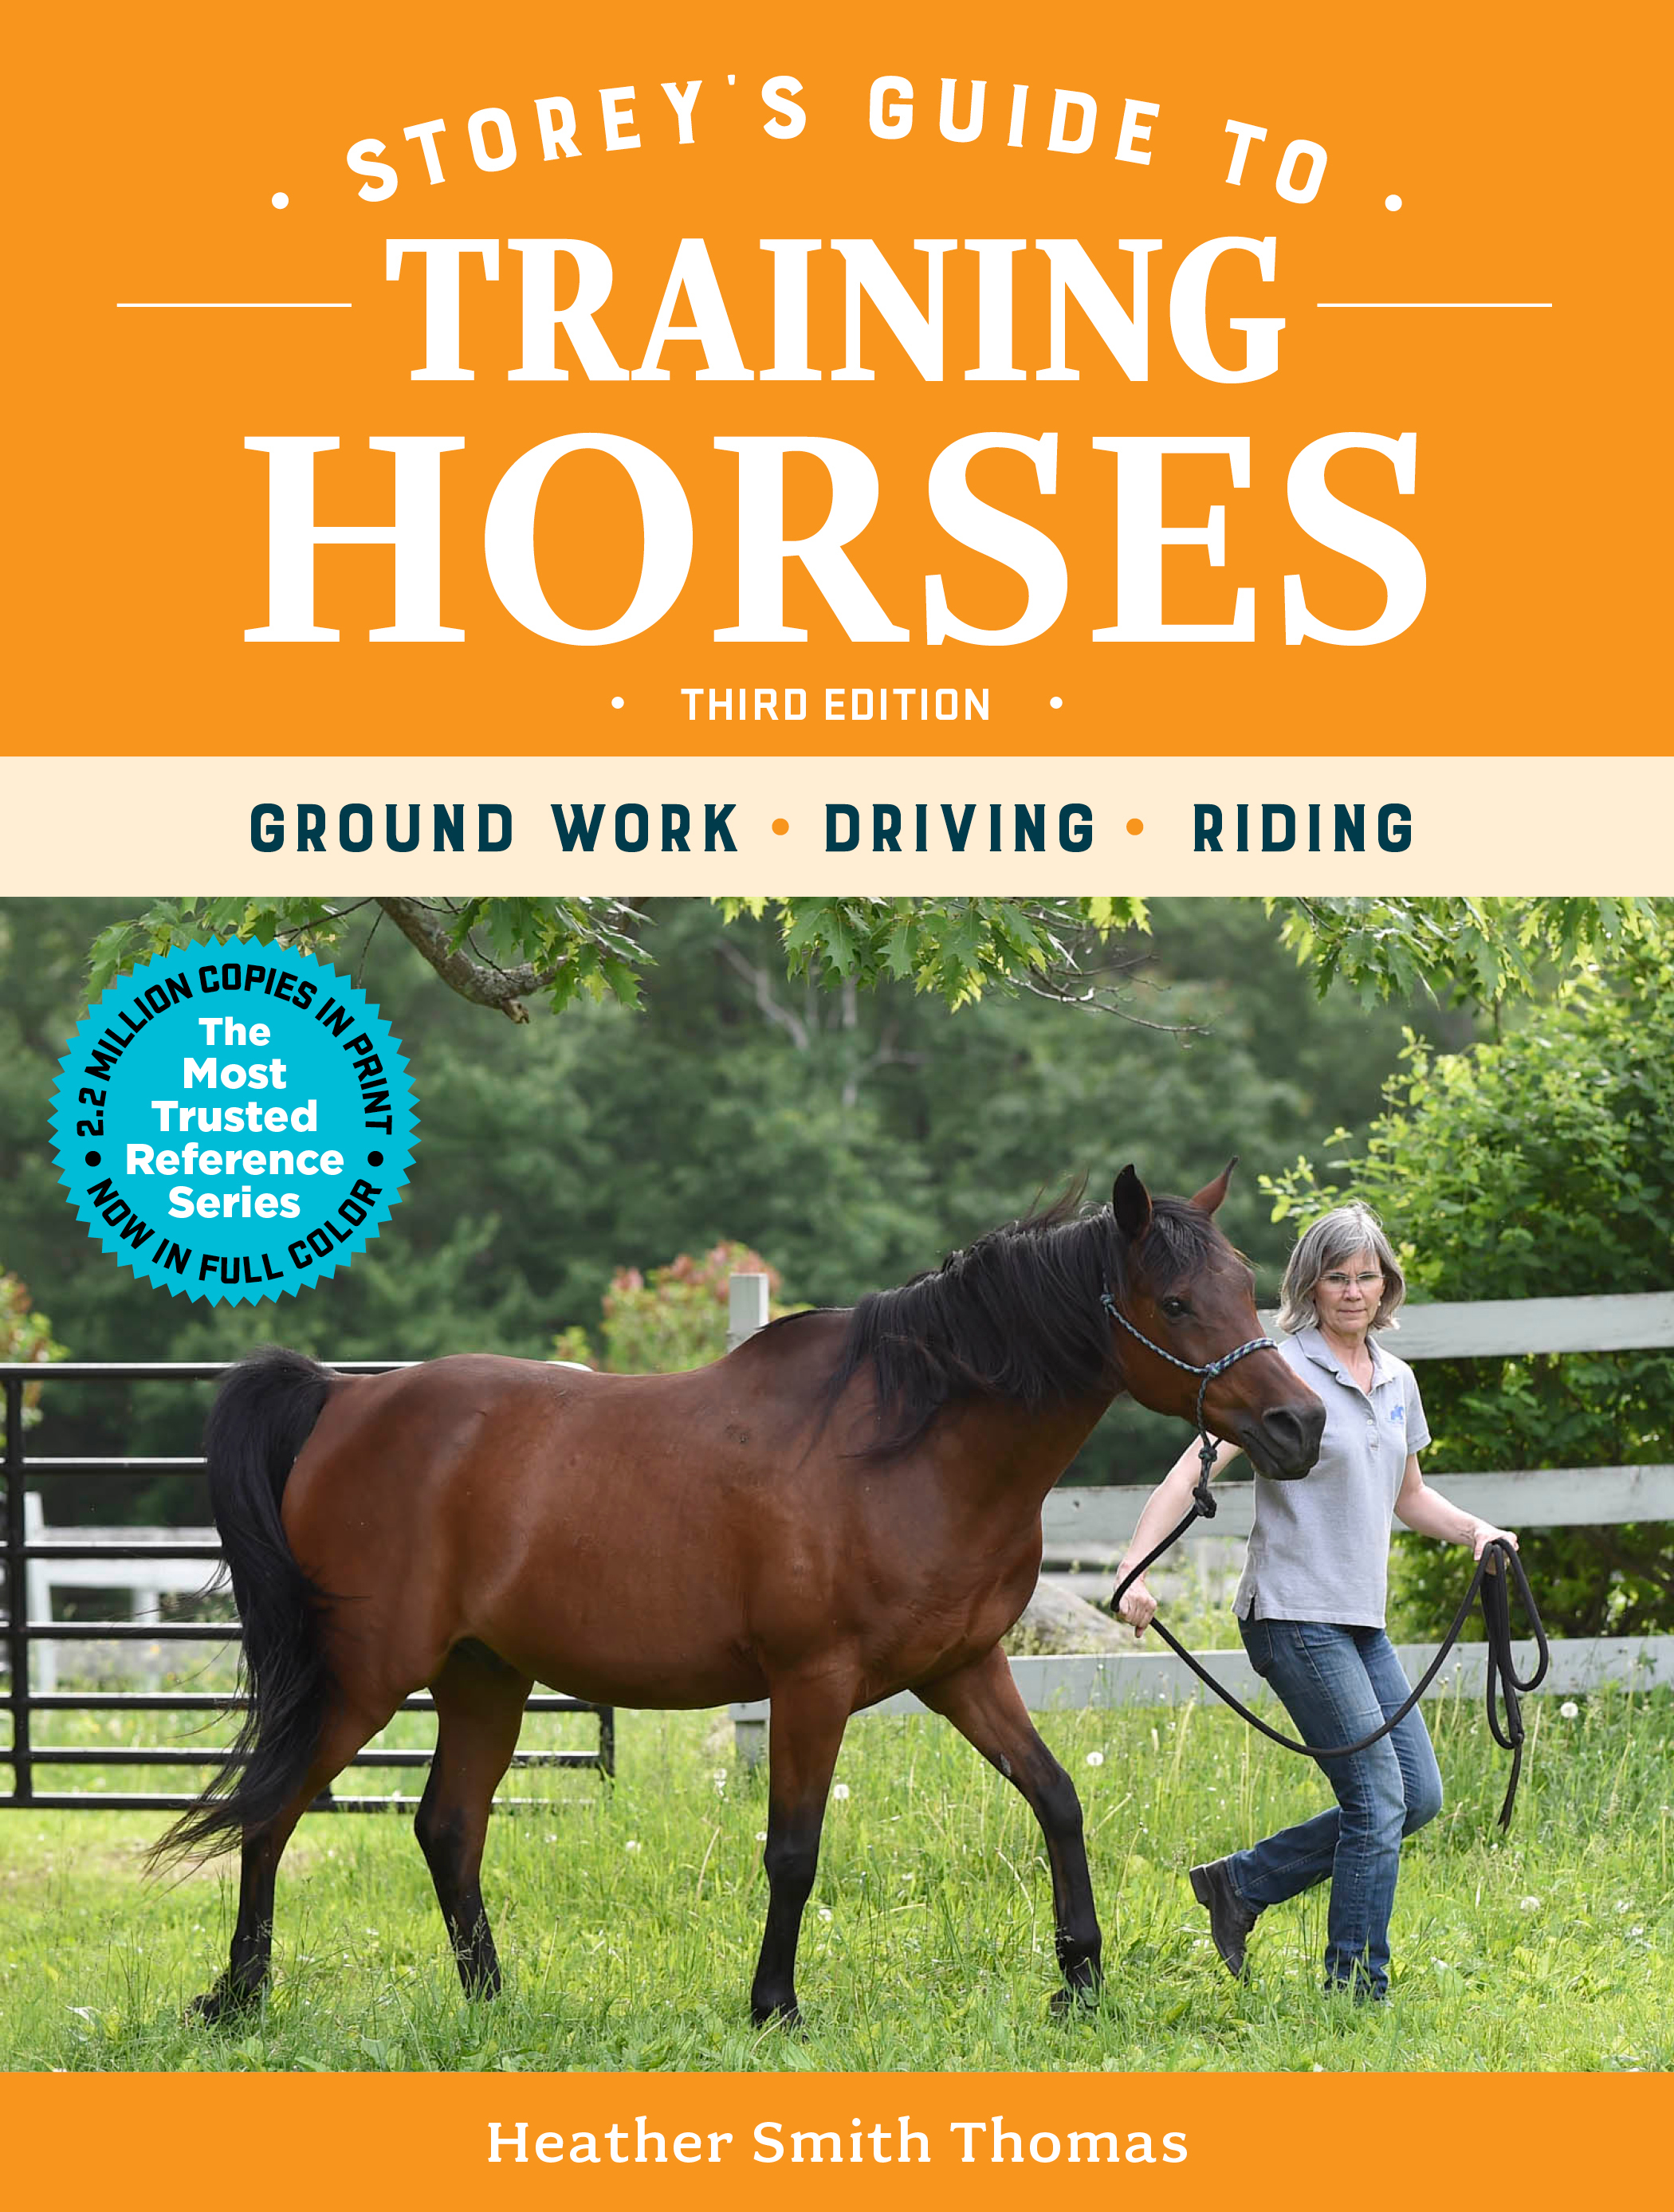 Storey's Guide to Training Horses, 3rd Edition Ground Work, Driving, Riding - Heather Smith Thomas